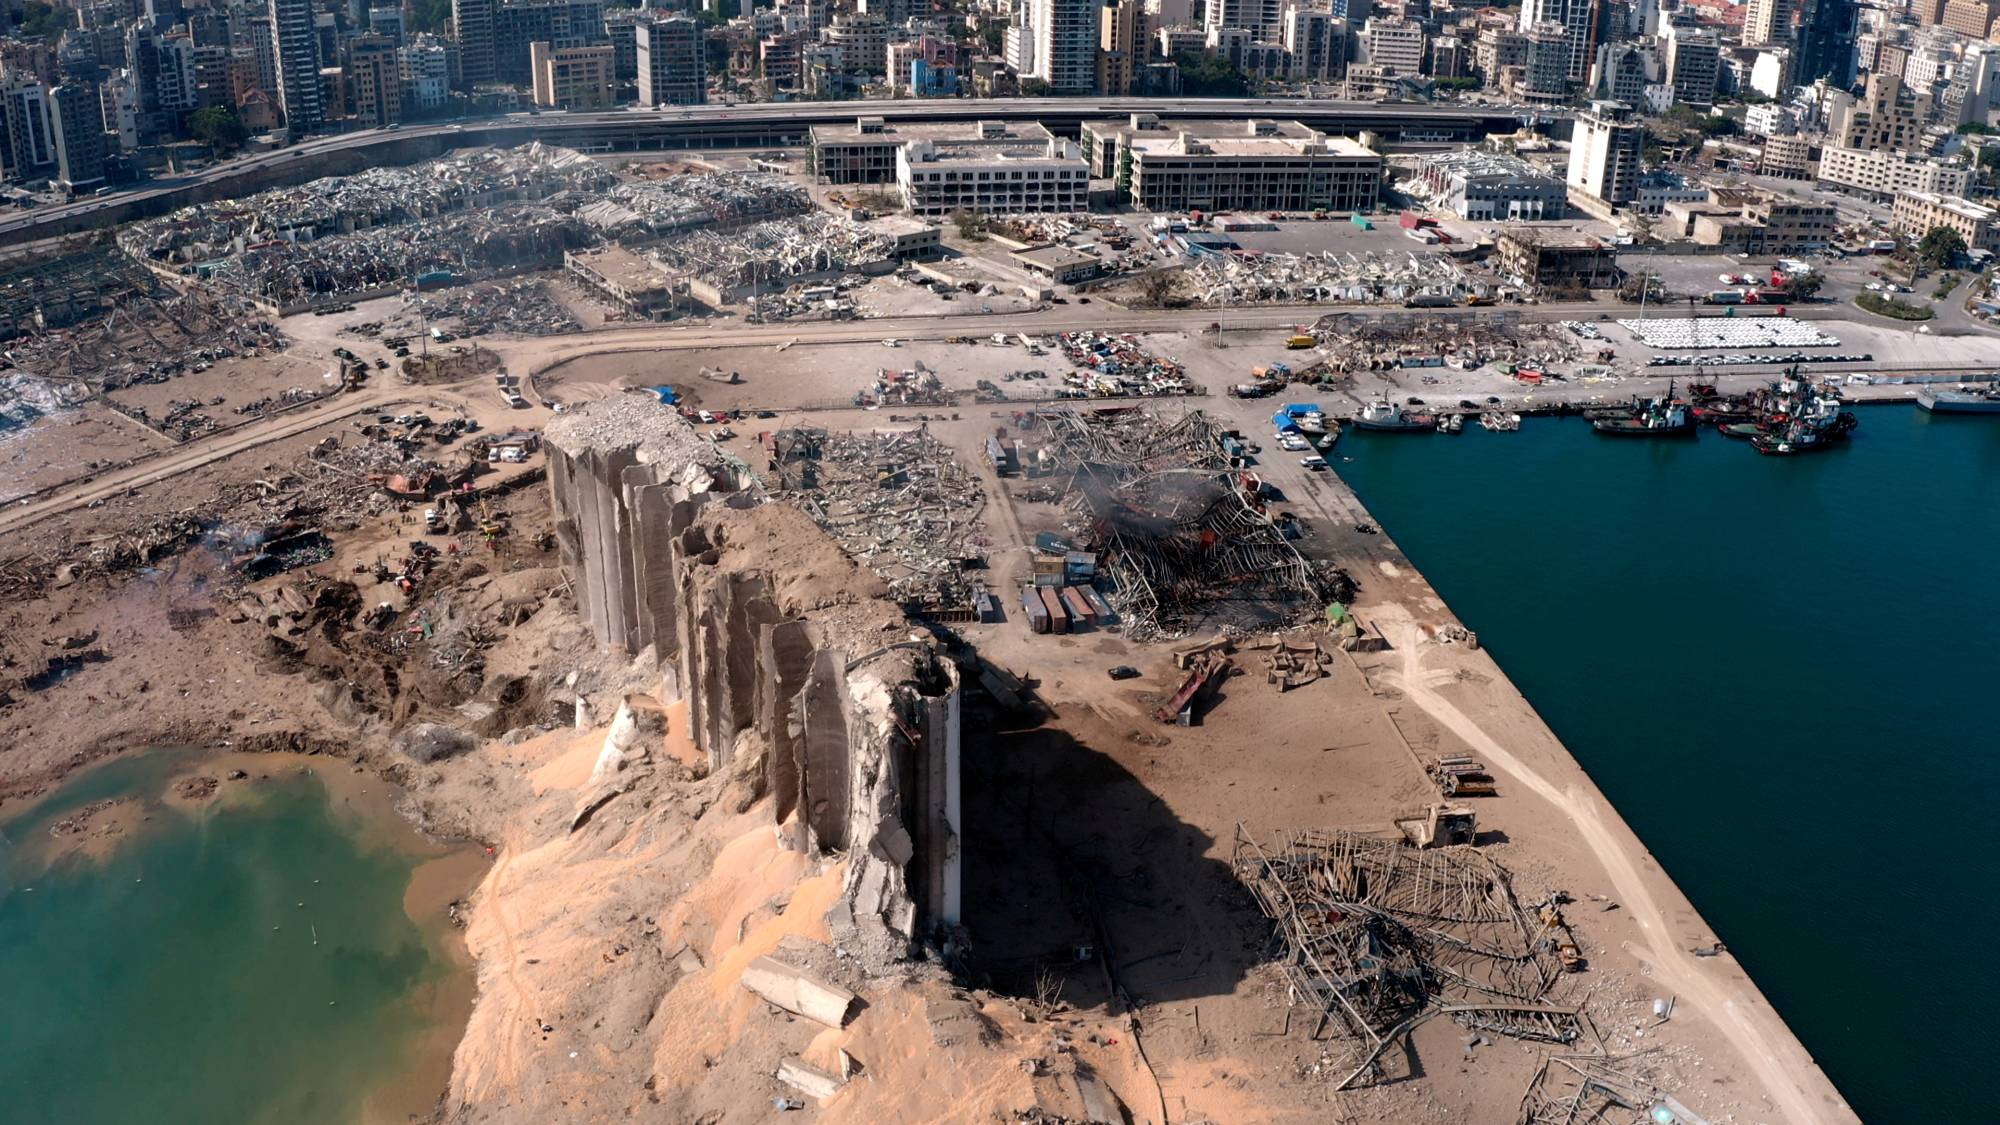 Beirut was heavily damaged by a massive explosion on Aug. 4.  | REUTERS TV / VIA REUTERS